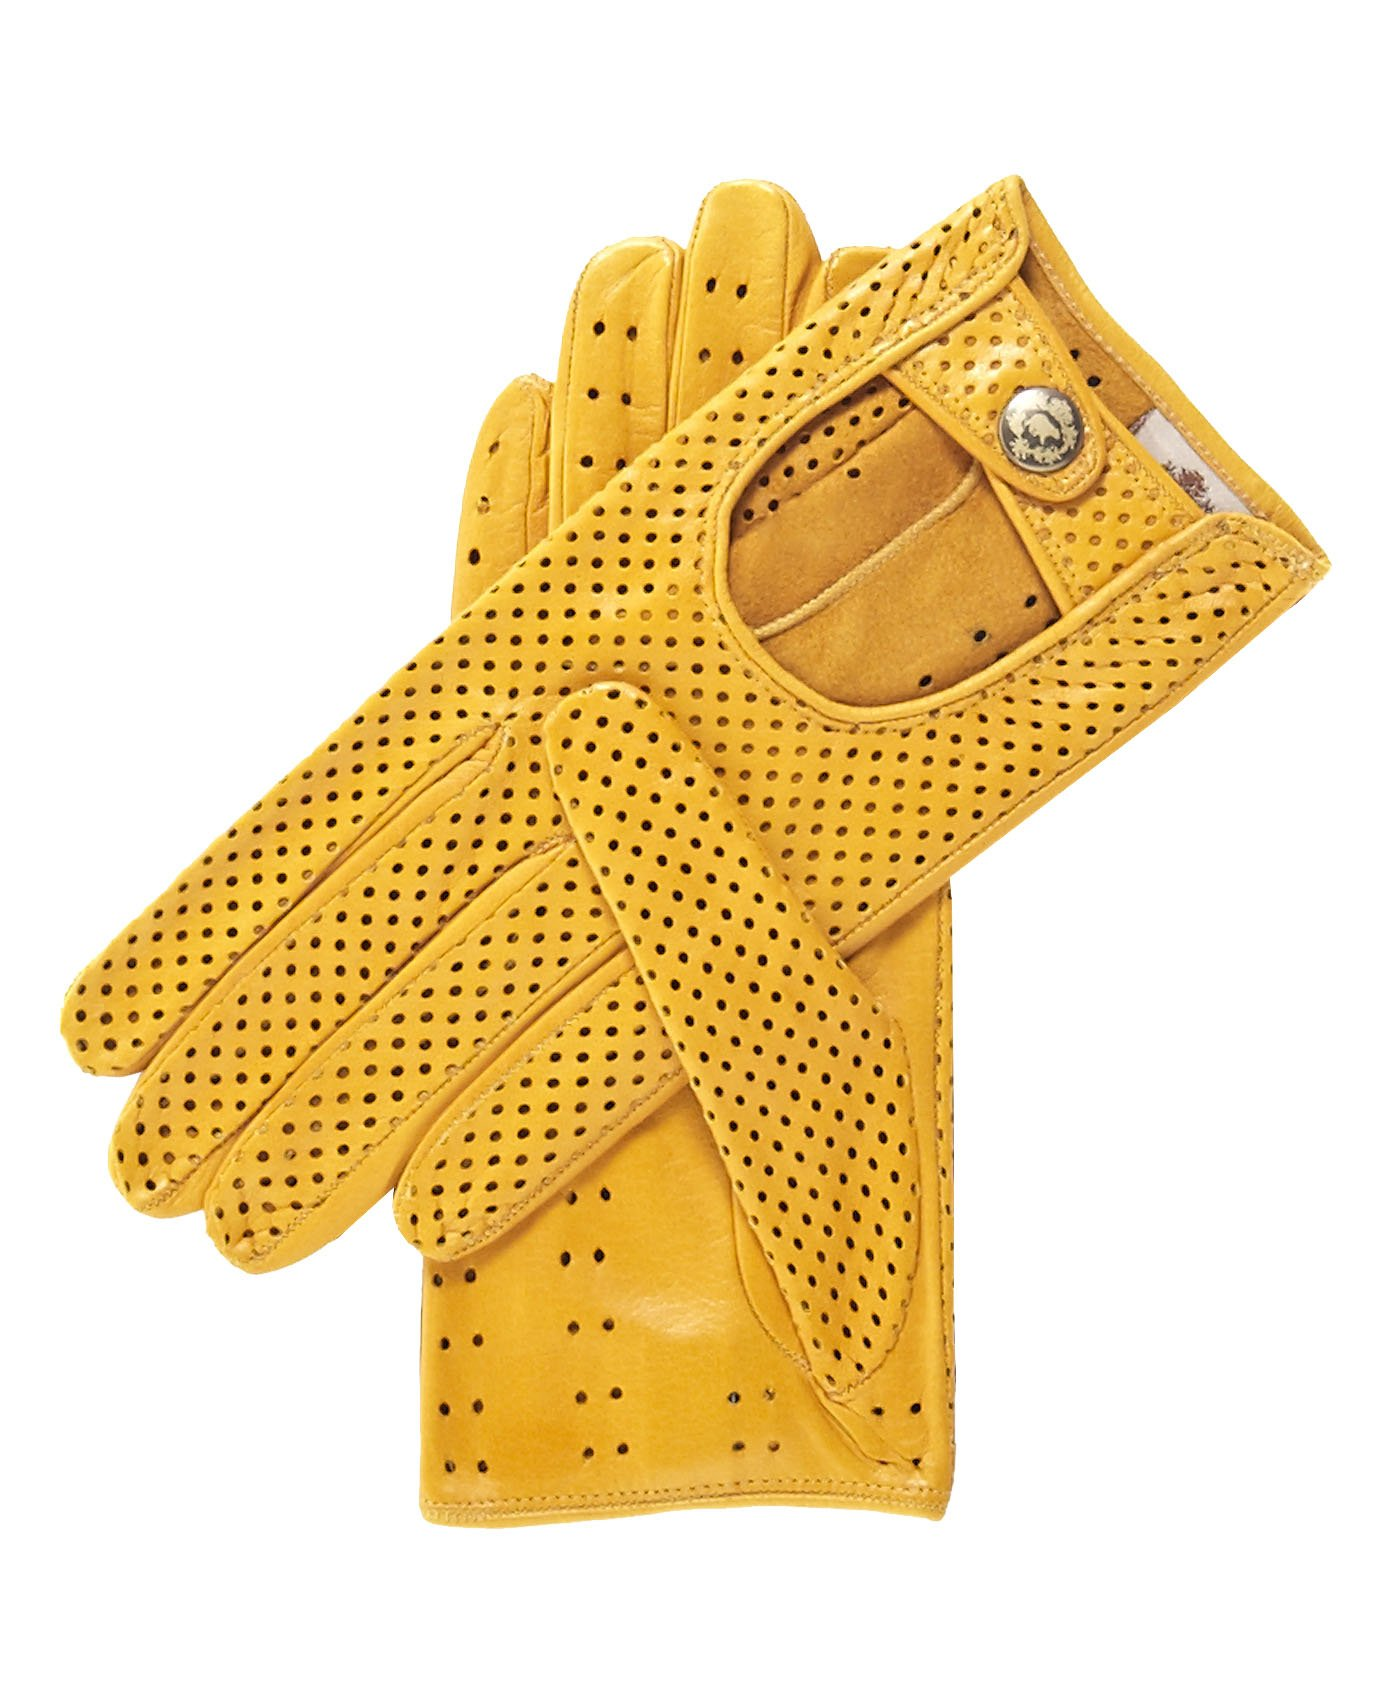 Fratelli Orsini Women's Ventilated Leather Driving Gloves Size 8 1/2 Color Yellow